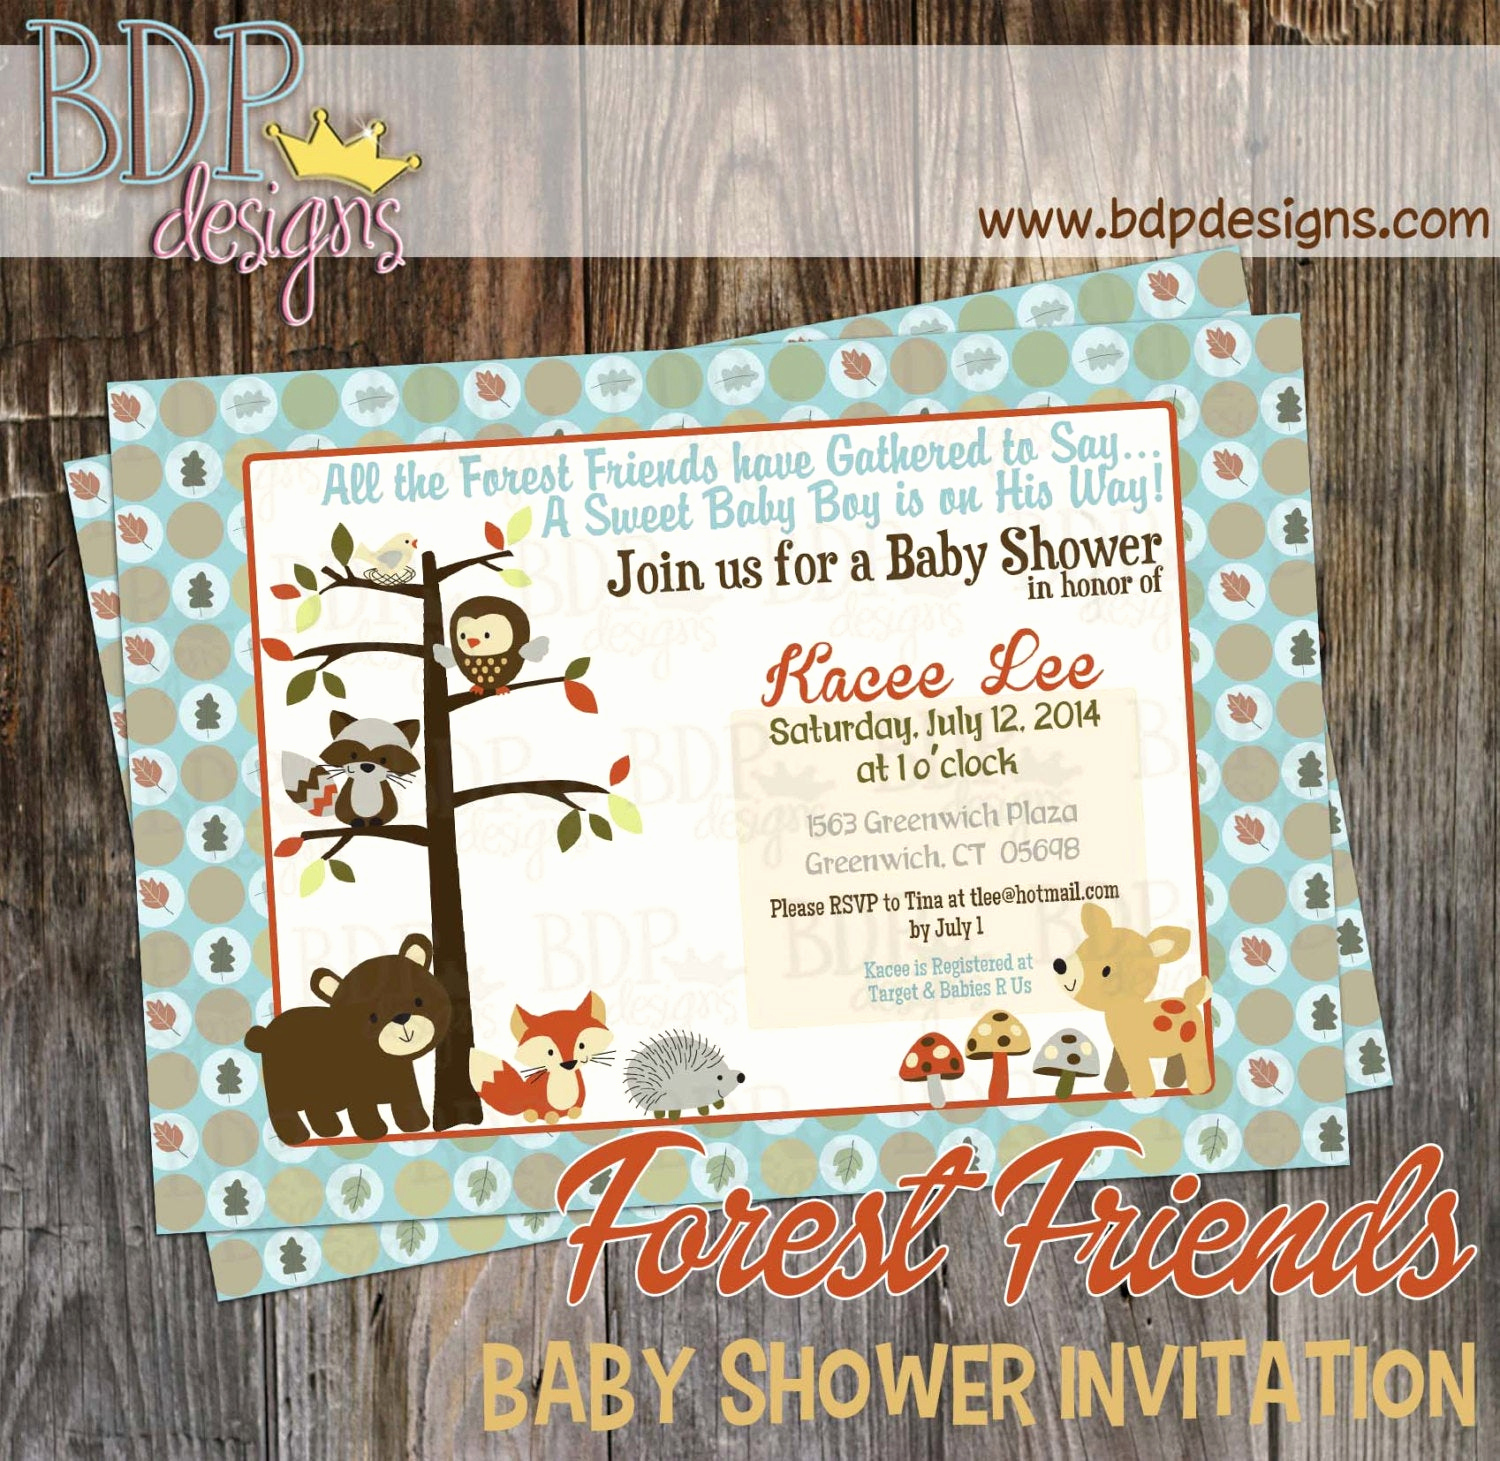 Woodland Baby Shower Invitation Unique forest Friends Woodland Baby Shower Invitation Customized